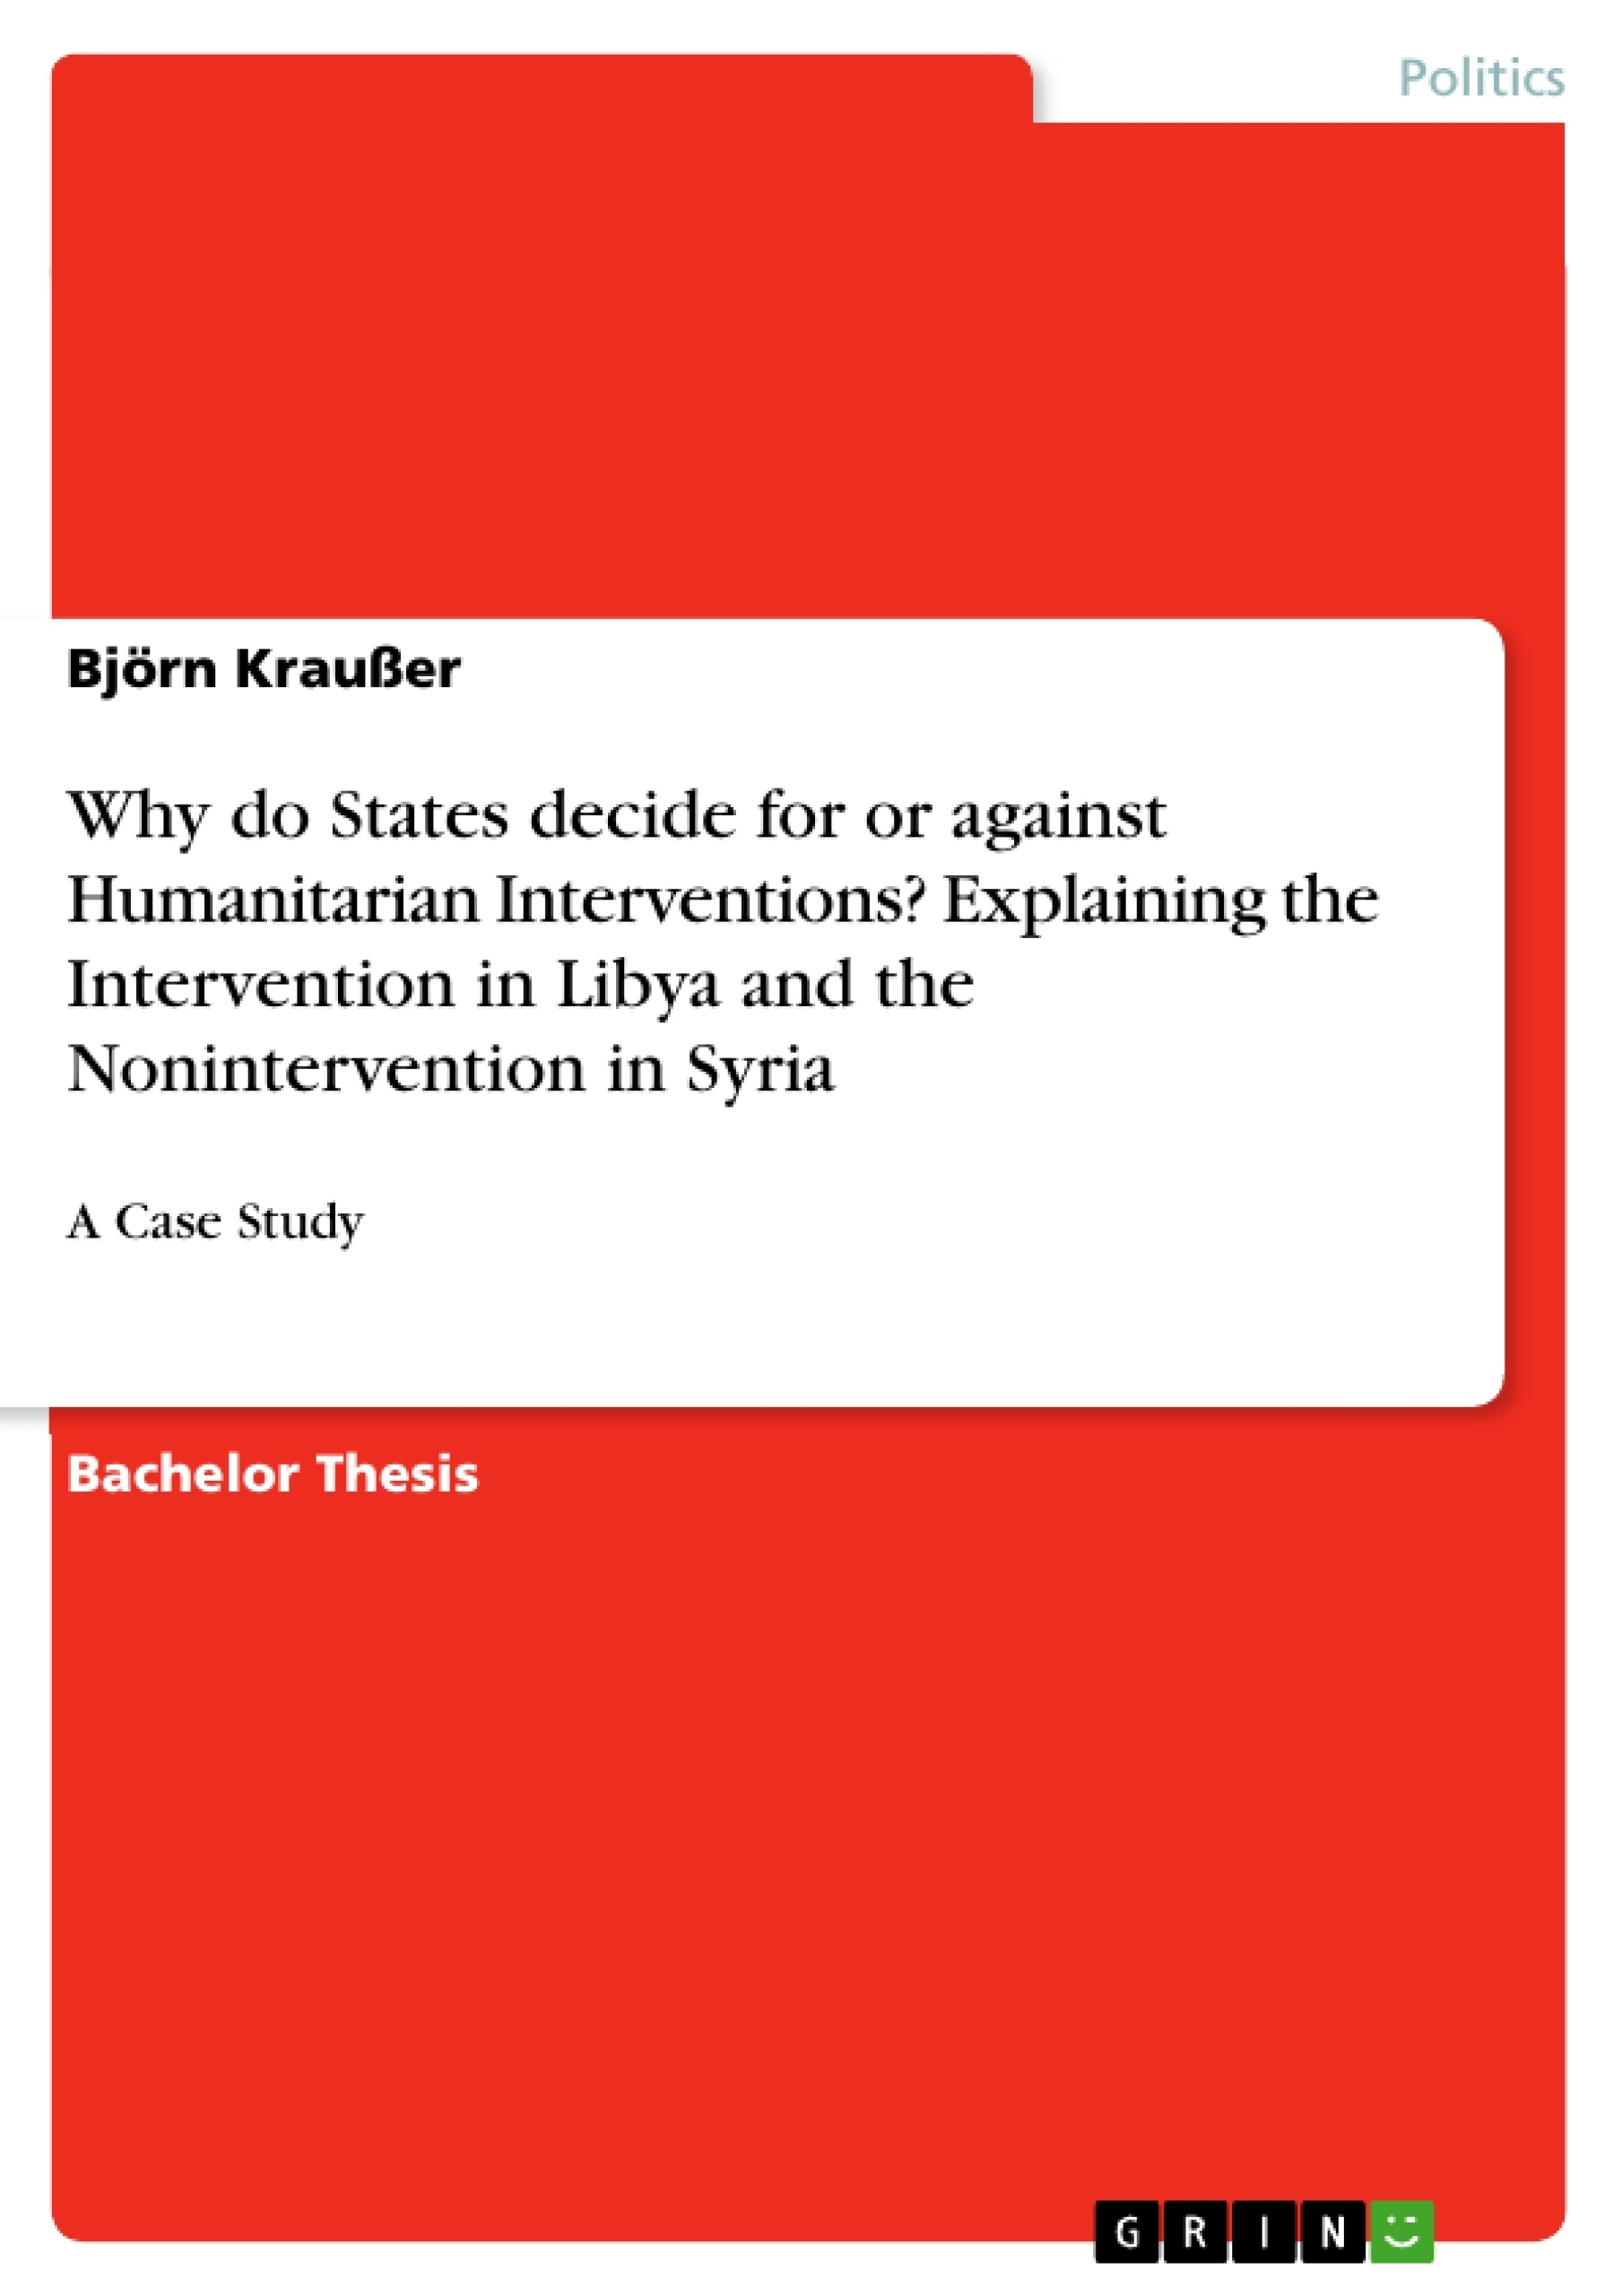 Title: Why do States decide for or against Humanitarian Interventions? Explaining the Intervention in Libya and the Nonintervention in Syria